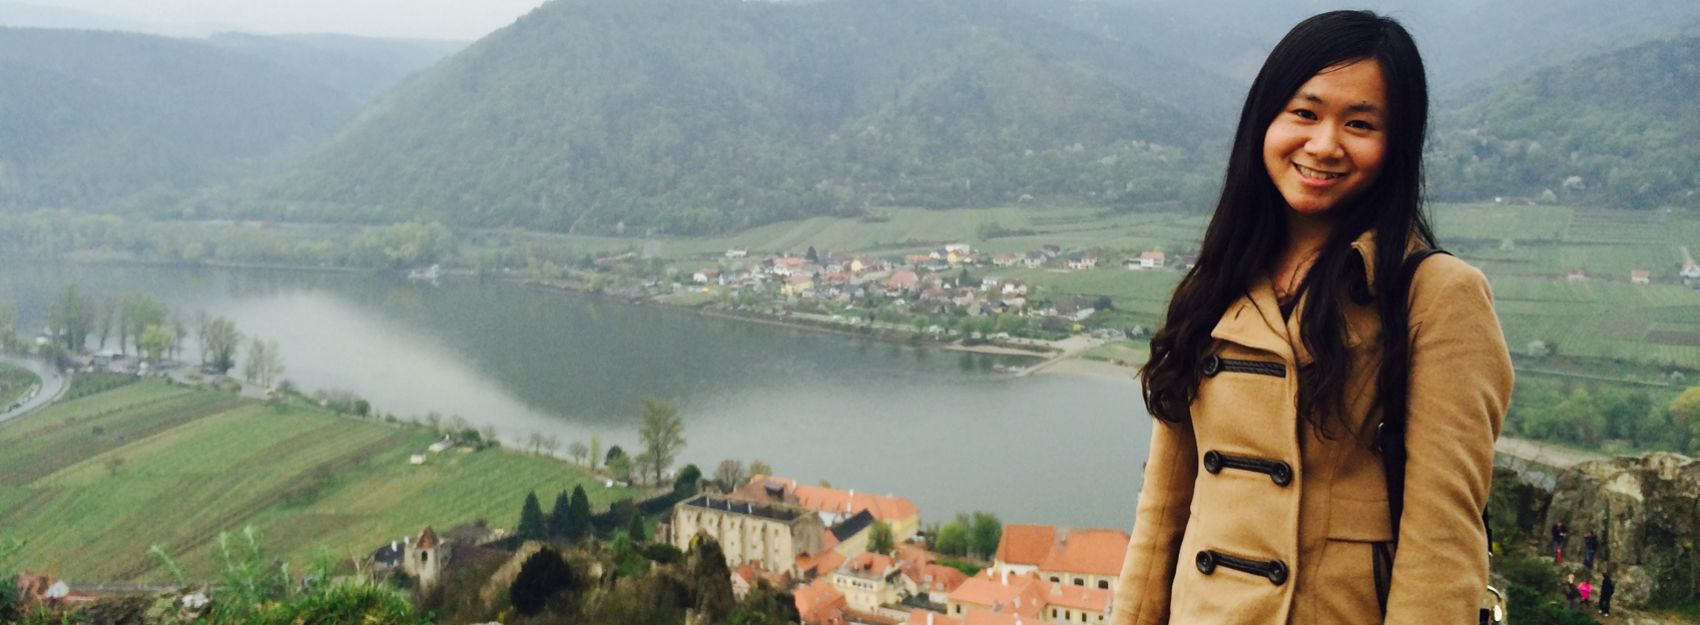 student in austria in front of mountain and lake landscape